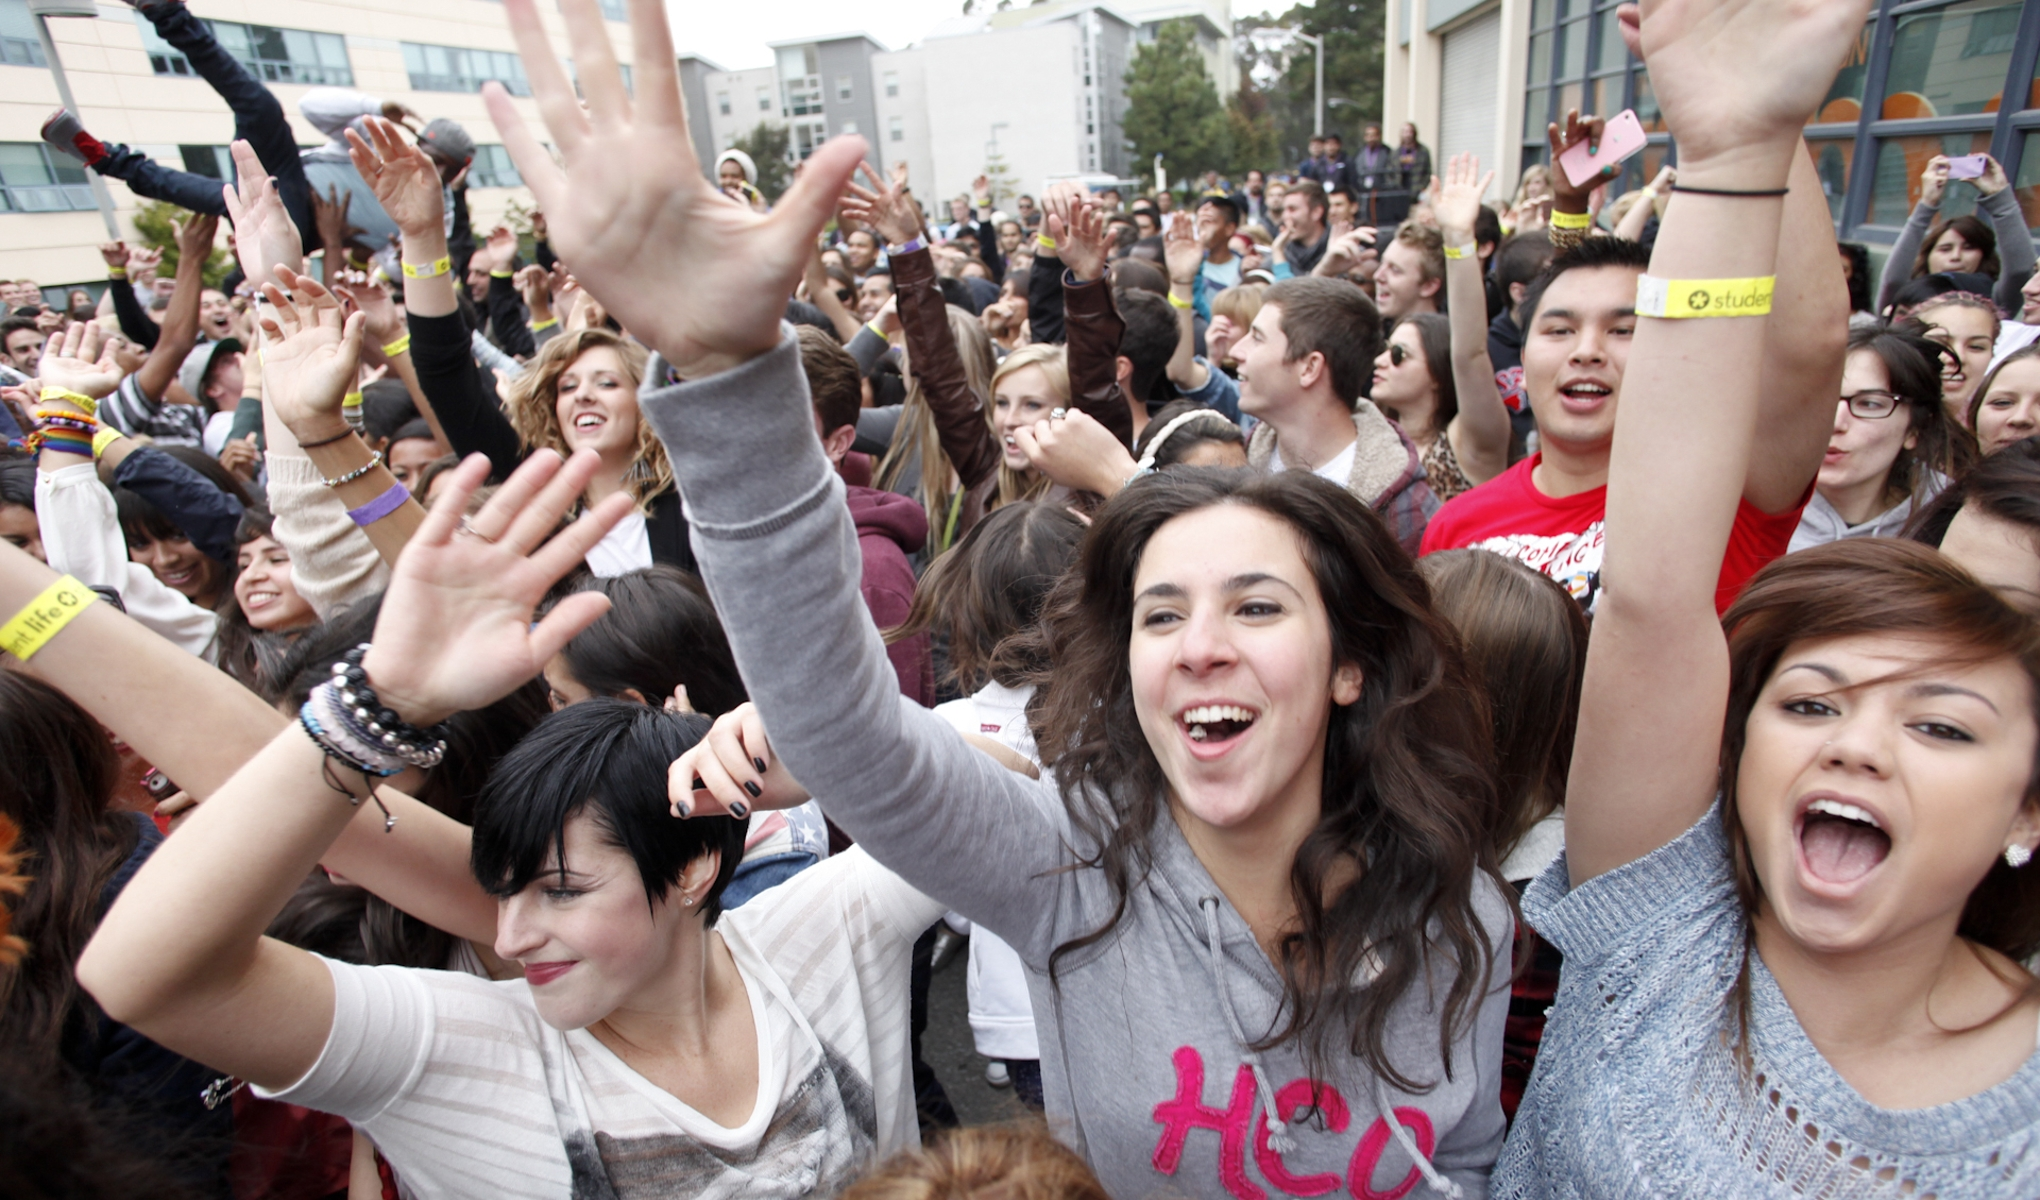 A large crowd of smiling students each raise a hand in the air